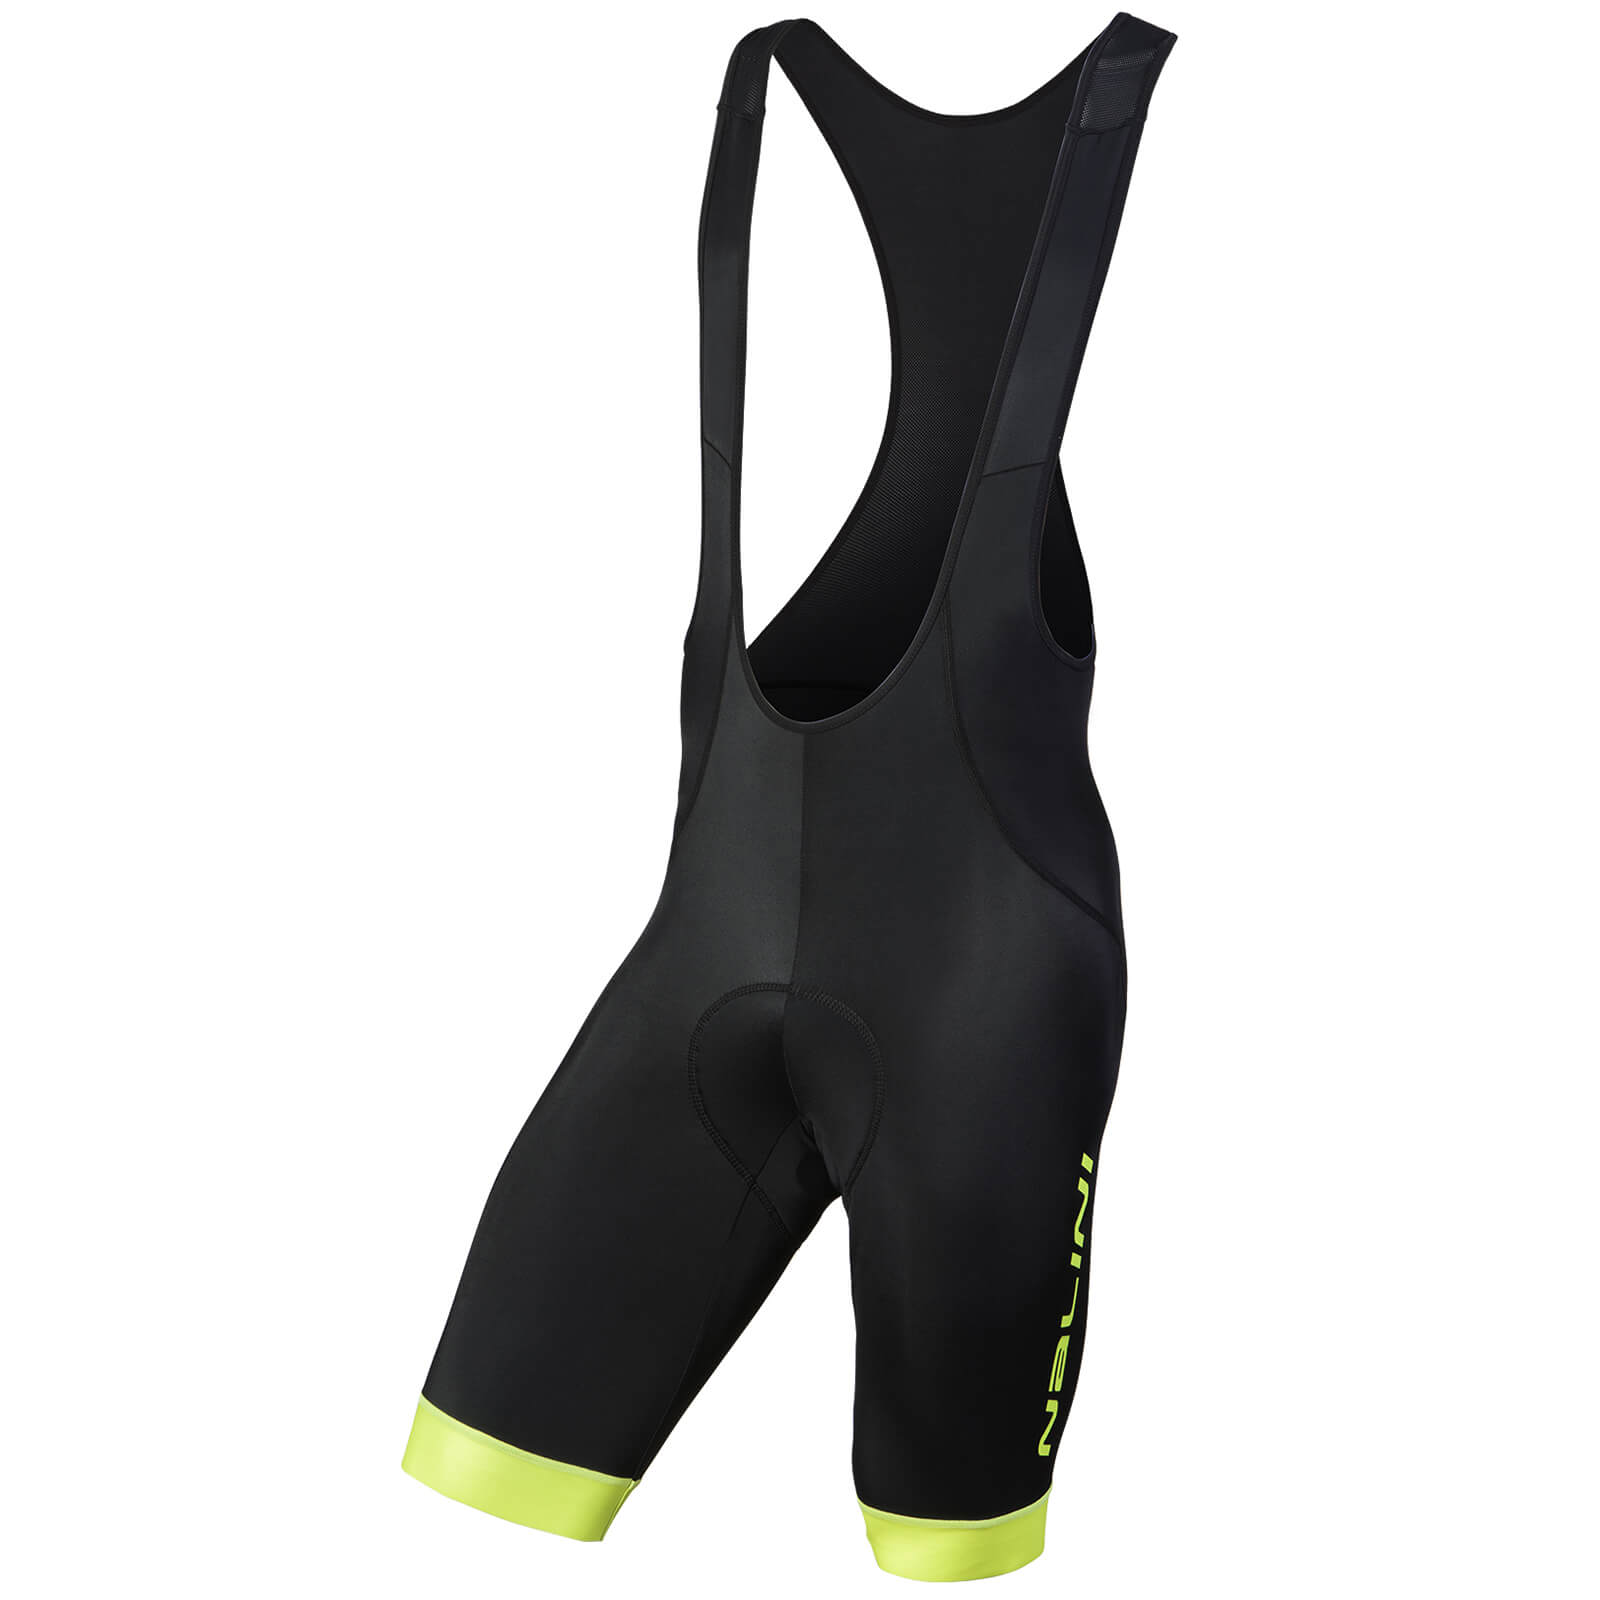 Nalini Gregario Bibshorts - Black/Fluro Yellow